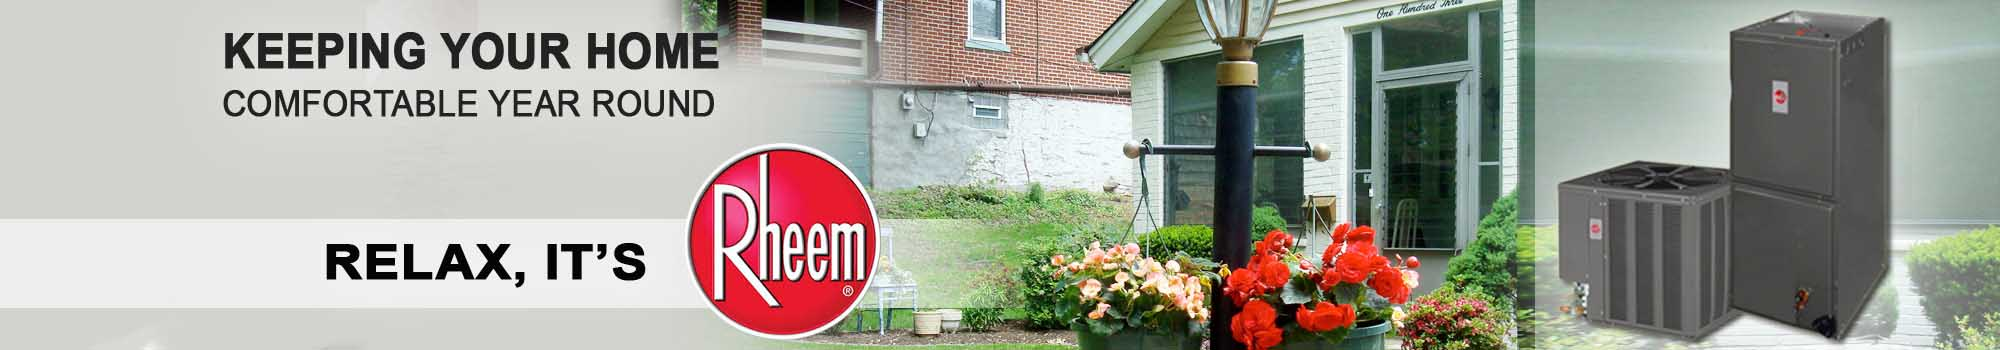 We work on Rheem Hot Water Tank products in Clarion PA.